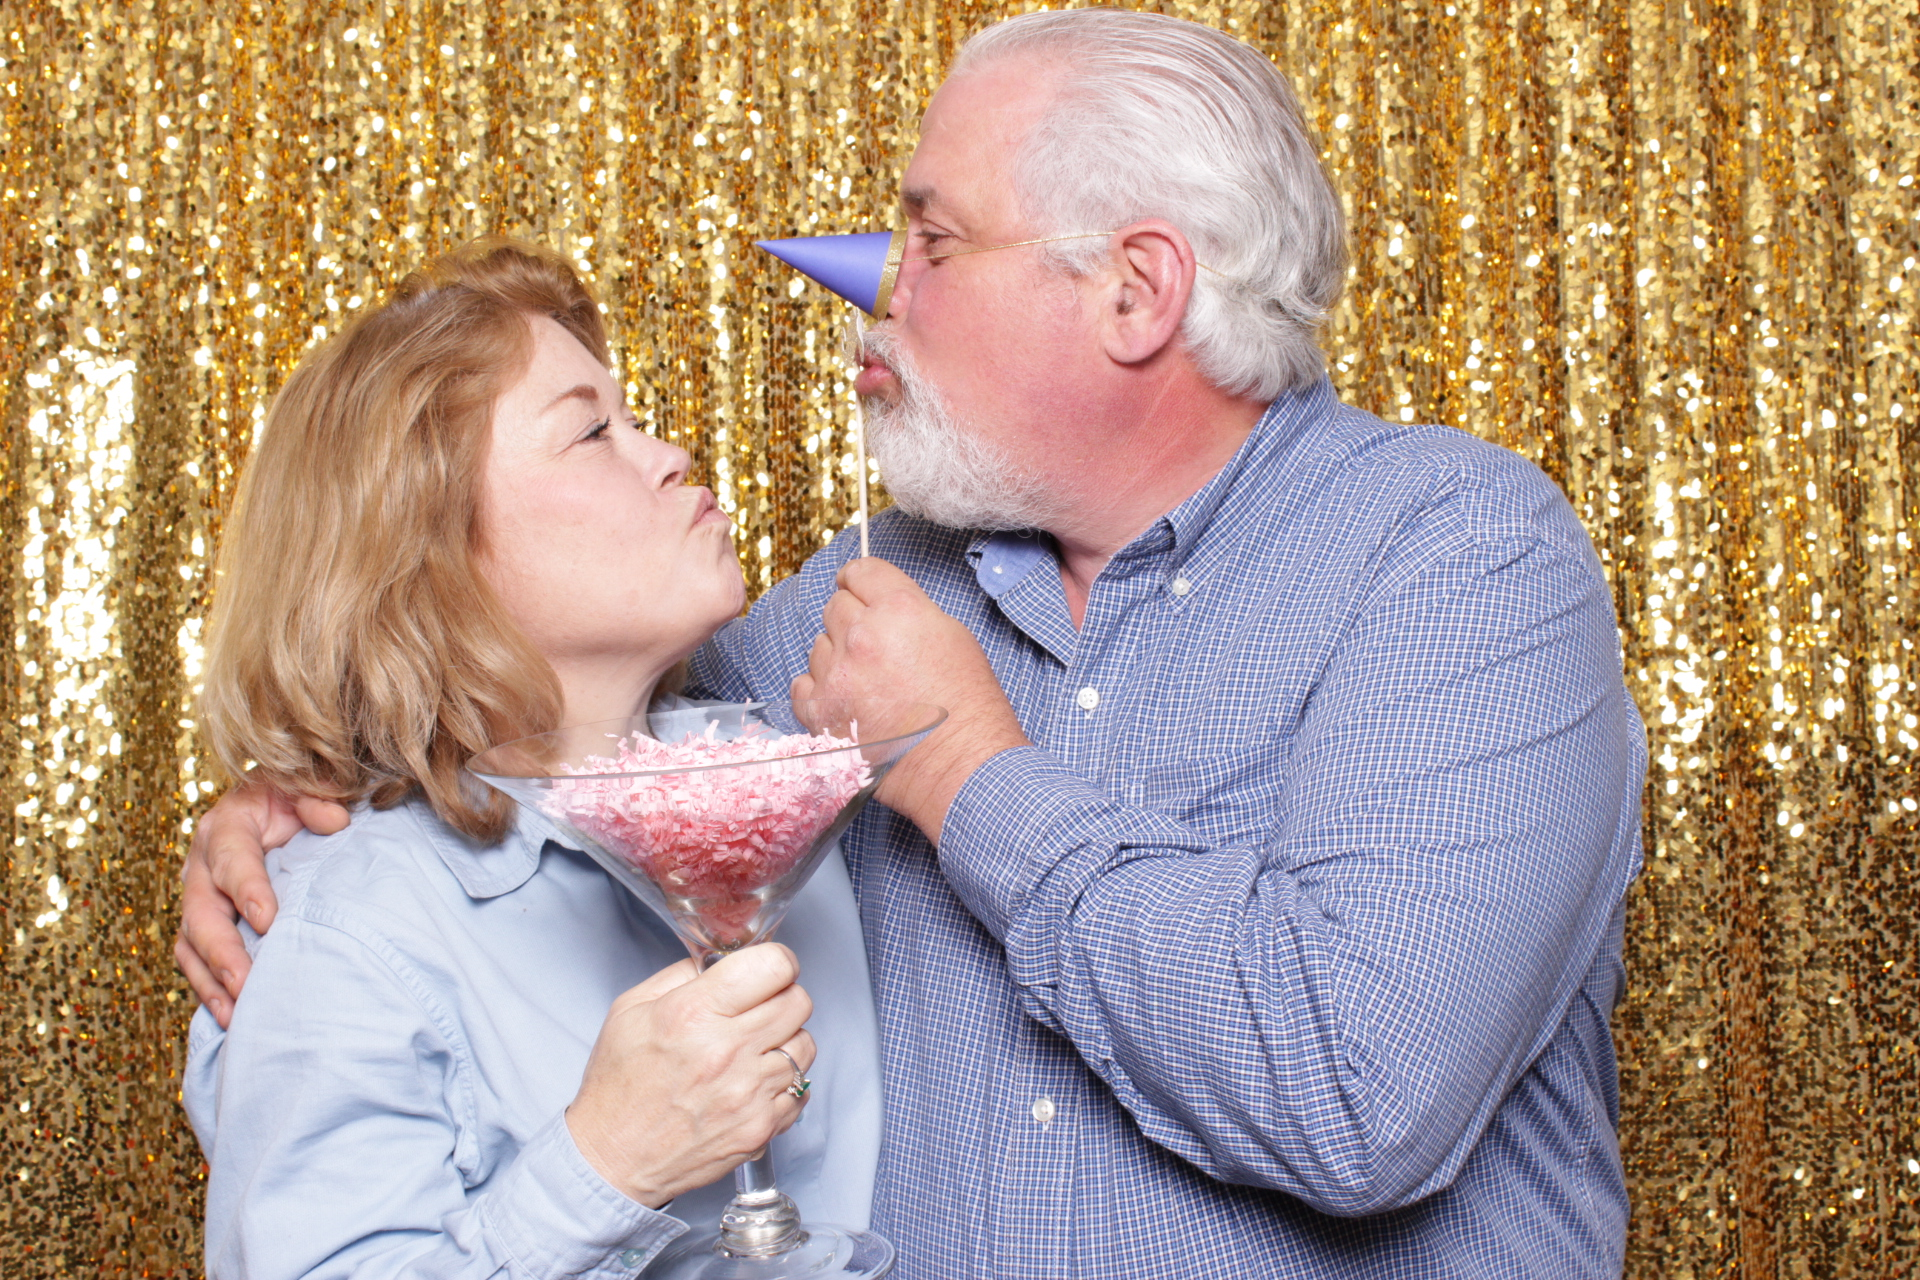 HOT GOLD SEQUINS BACKDROP   HOT PINK PHOTO BOOTH   DC PHOTO BOOTH RENTAL